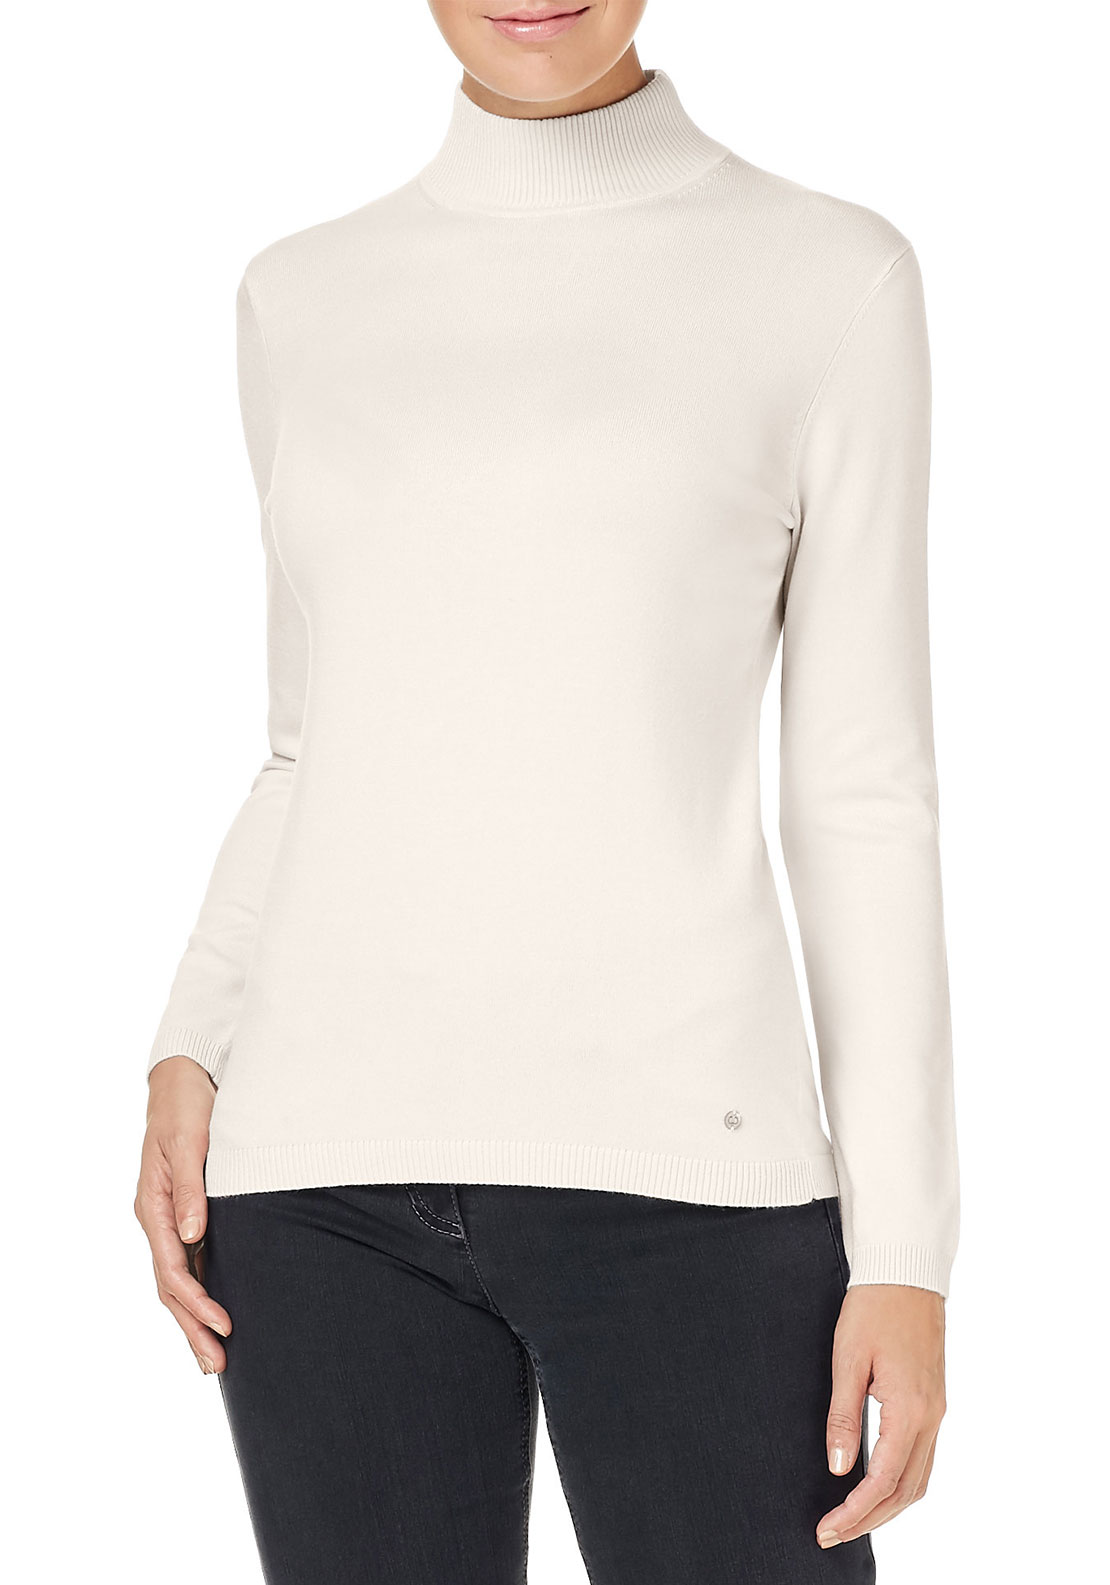 Gerry Weber High Neck Sweater, Cream